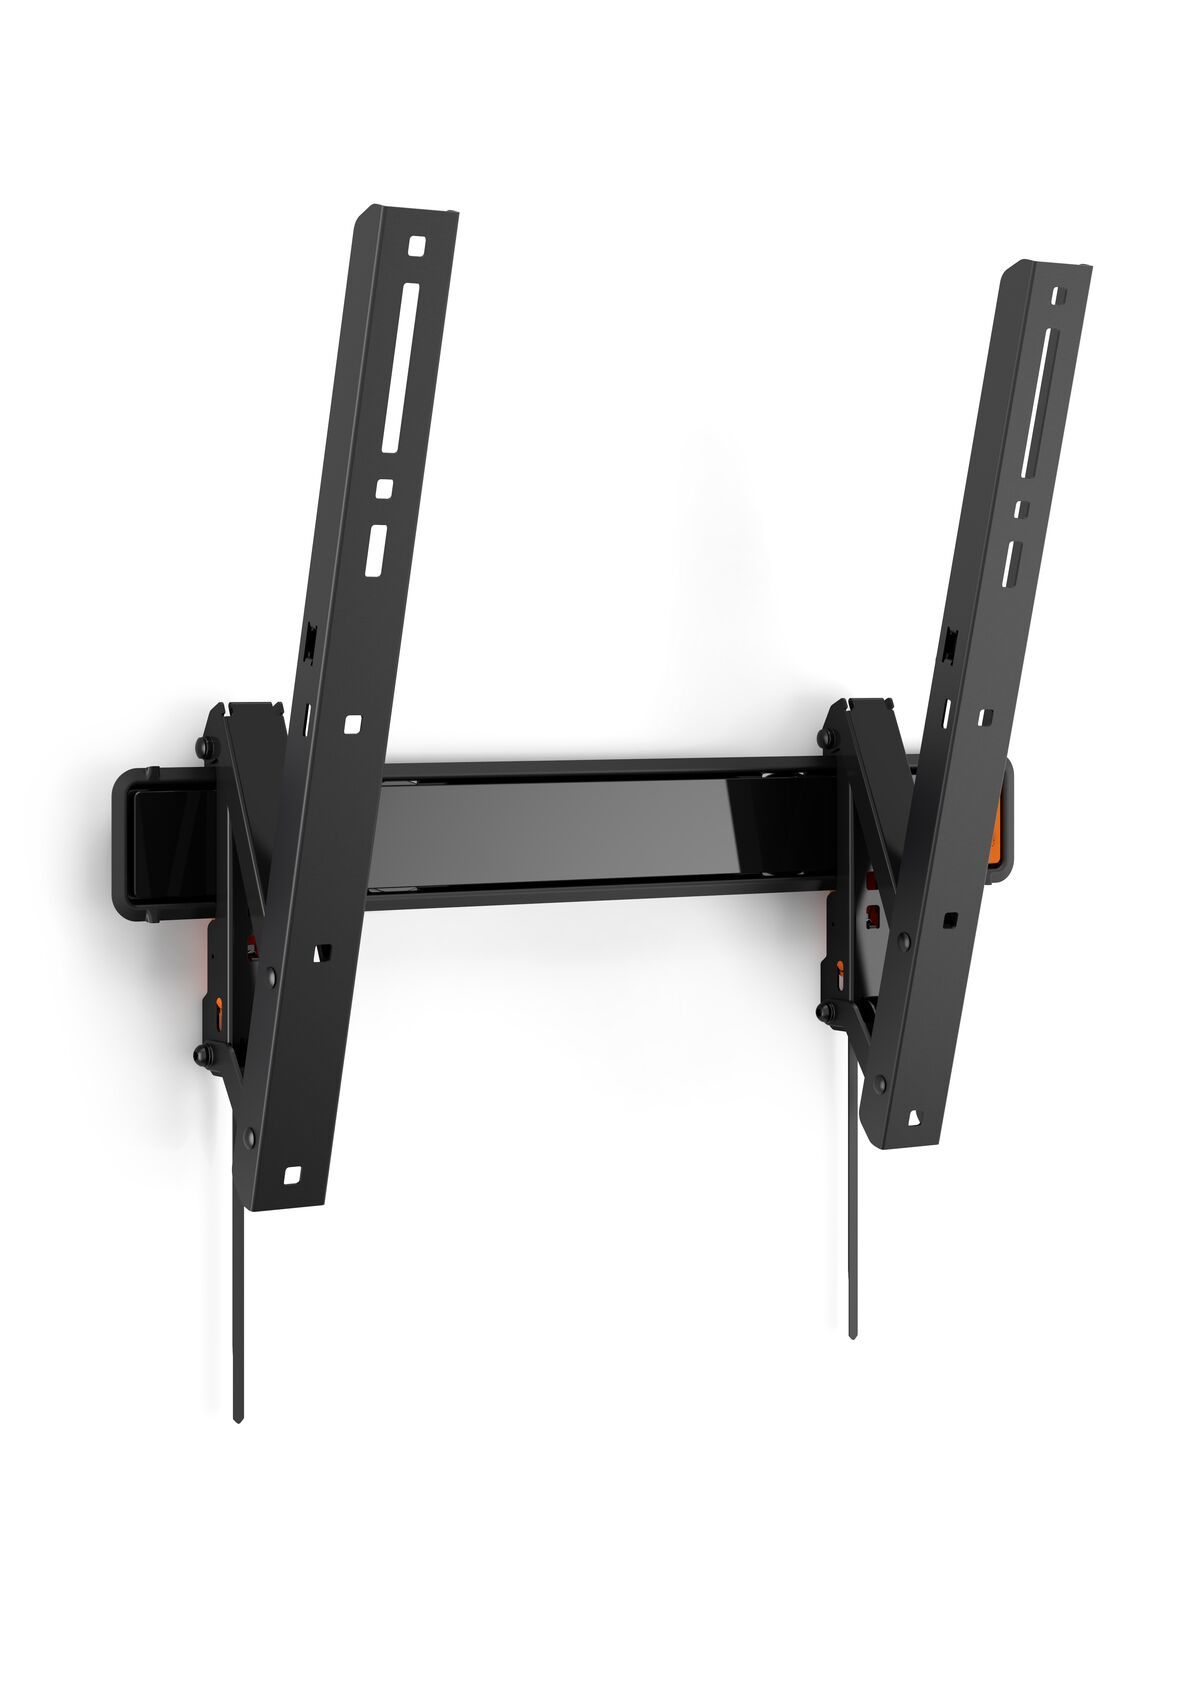 Vogel's WALL 3215 Soporte TV Inclinable - Adecuado para televisores de 32 a 55 pulgadas hasta 30 kg - Abatible hasta 15° - Product